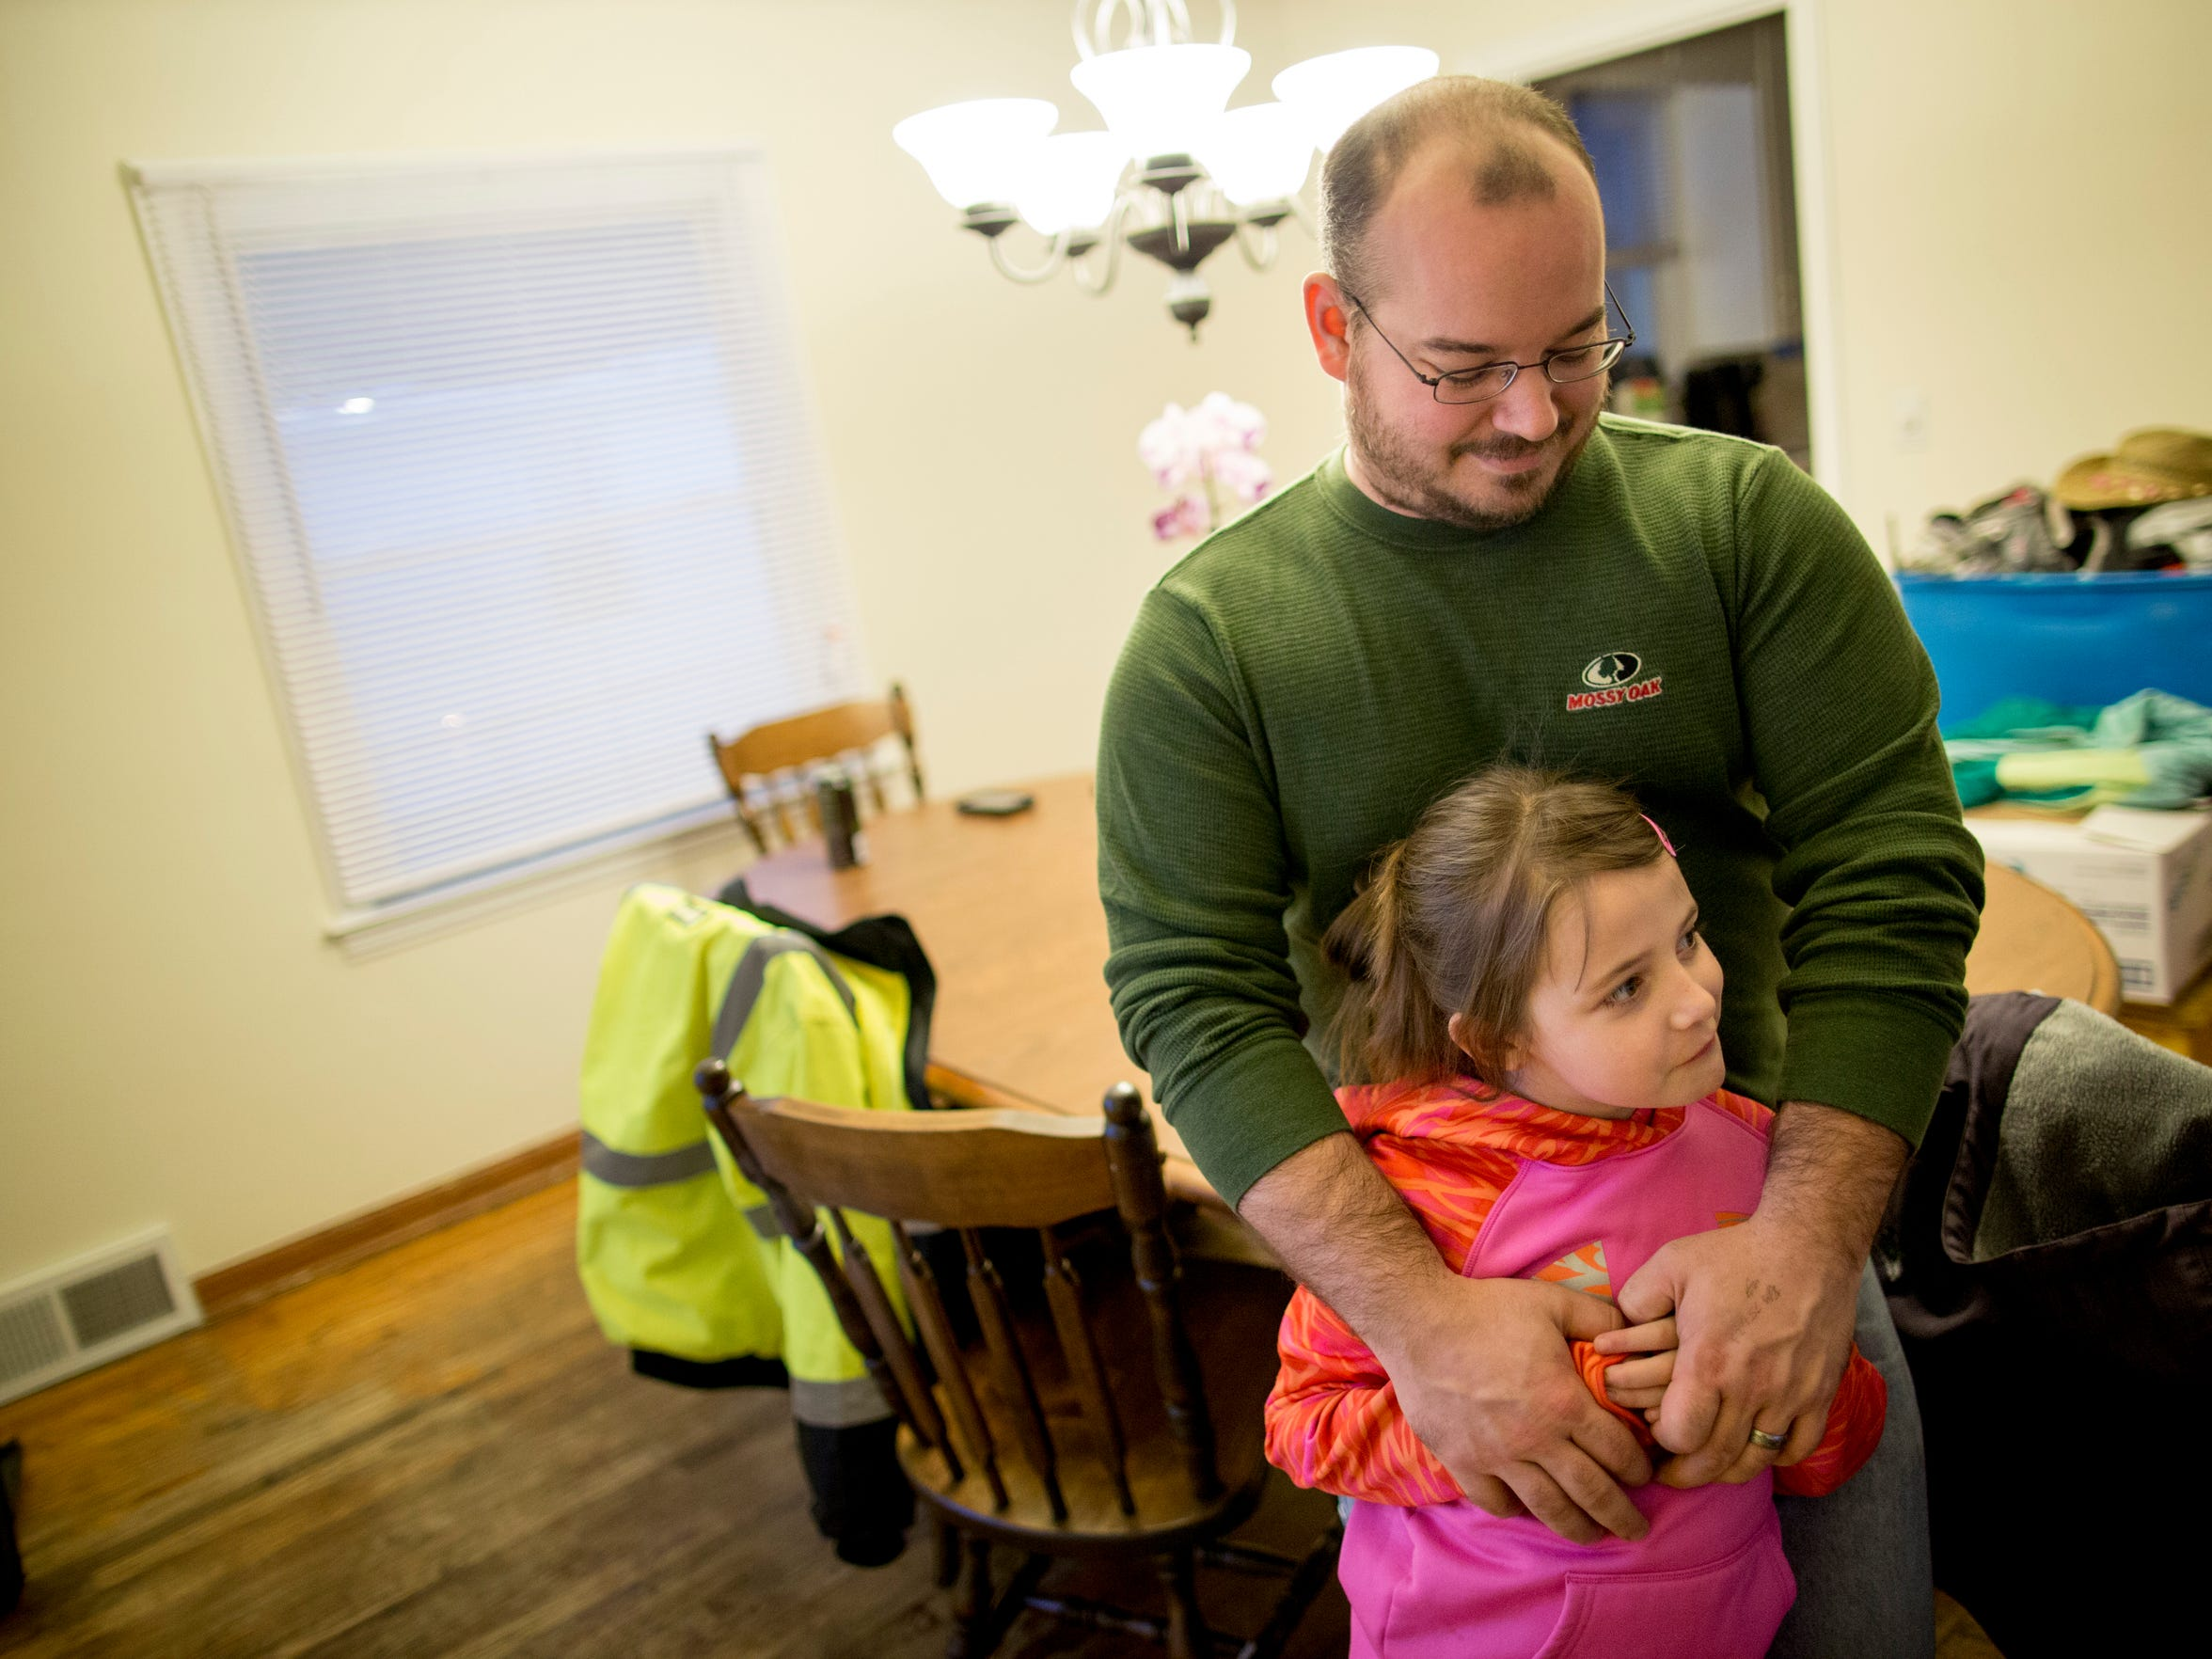 Kevin VanHamlin hugs his daughter Lauralee, 7, Saturday, Jan. 16, 2016, in the dinning room at their 24th Street home in Port Huron. The VanHamlin family had received a grant from the Urban Pioneer Program to purchase their home.